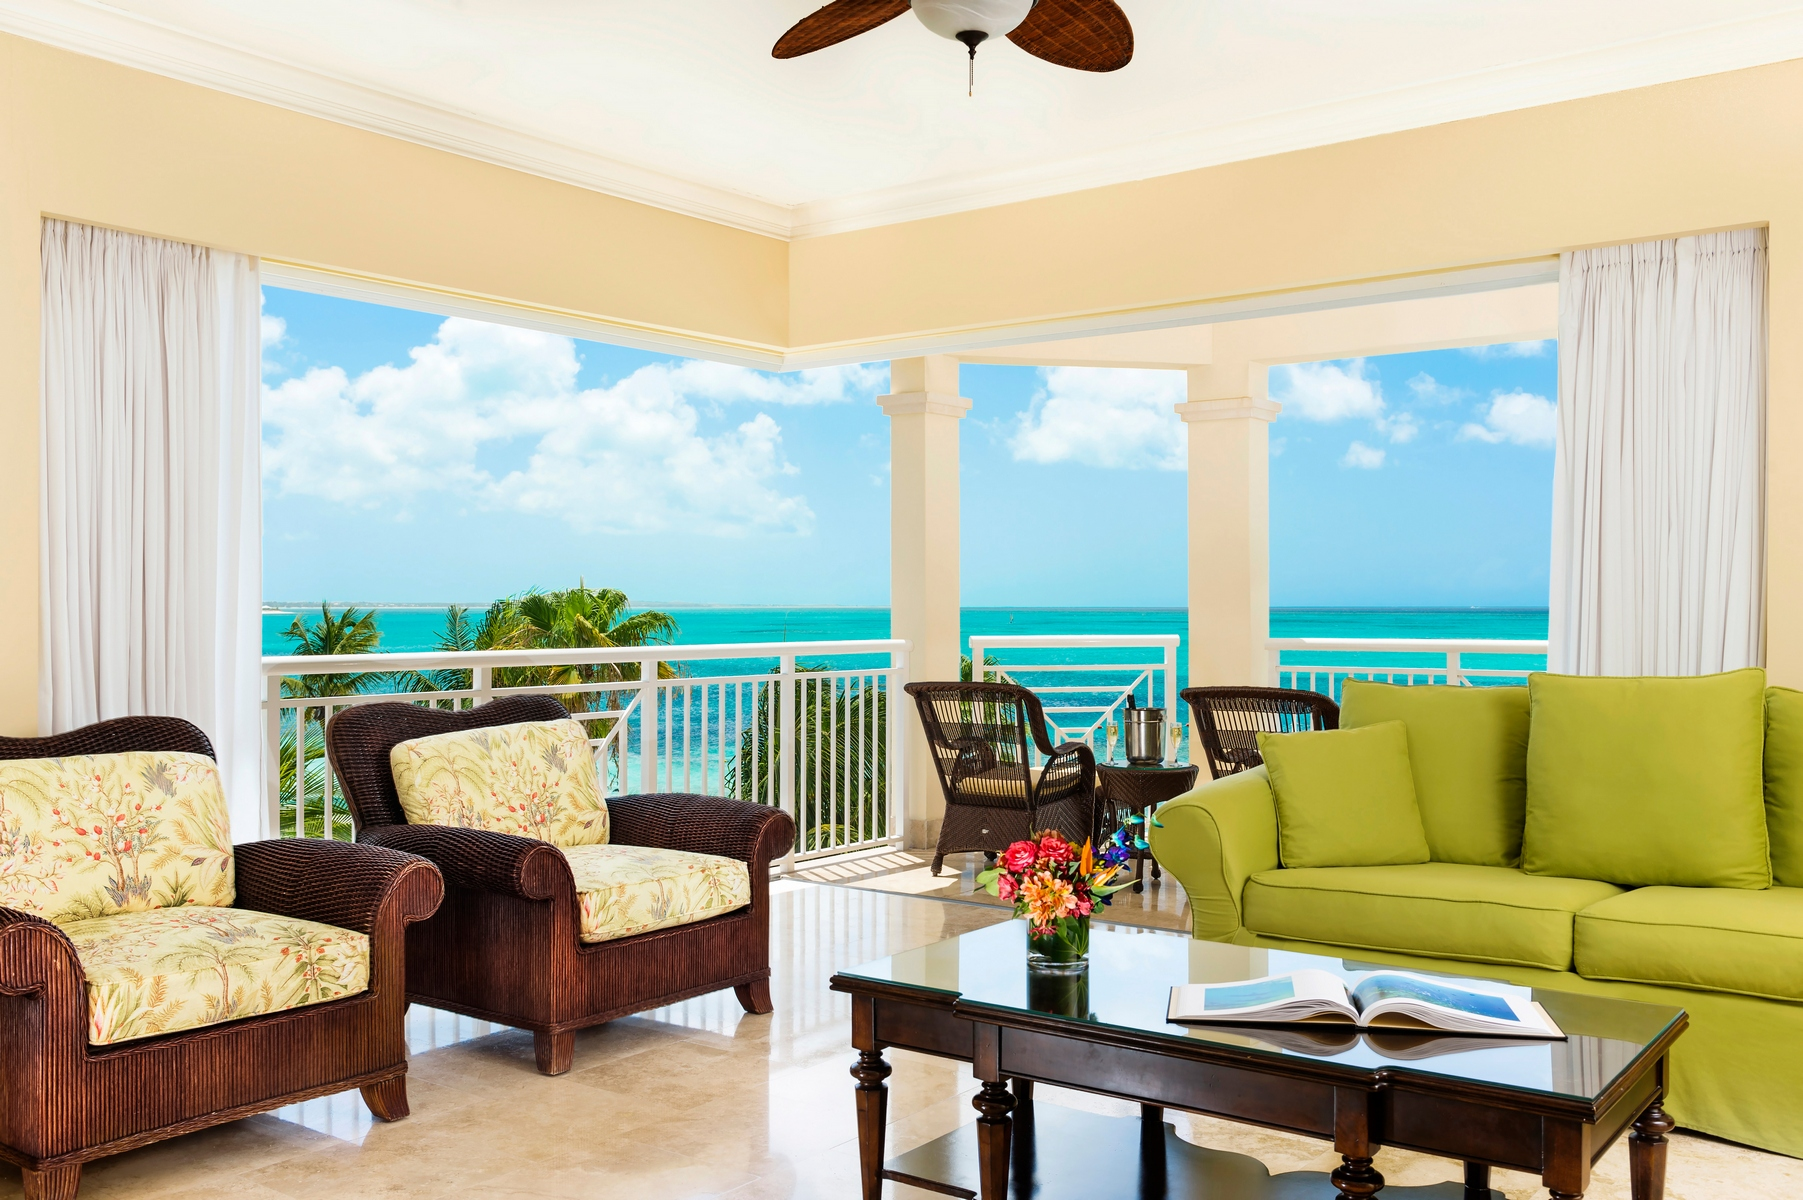 Condominium for Sale at Windsong - Suite 131 Beachfront Grace Bay, Providenciales, TC Turks And Caicos Islands